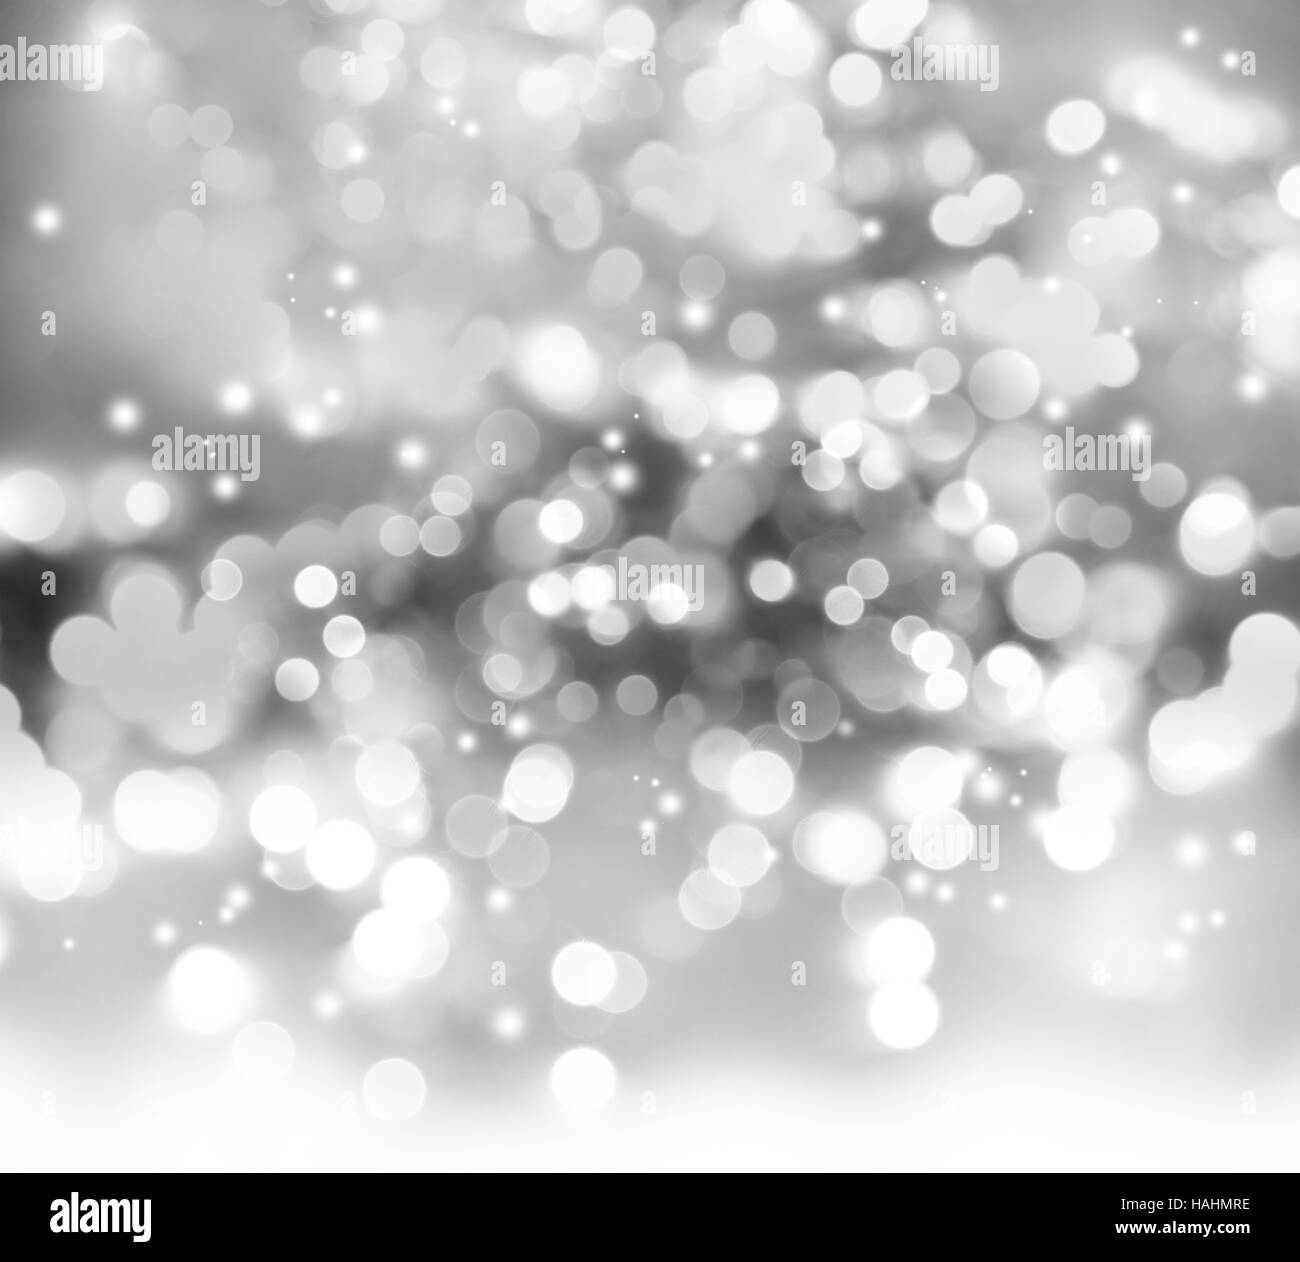 Gray and white circles abstract defocused bokeh background Stock Photo